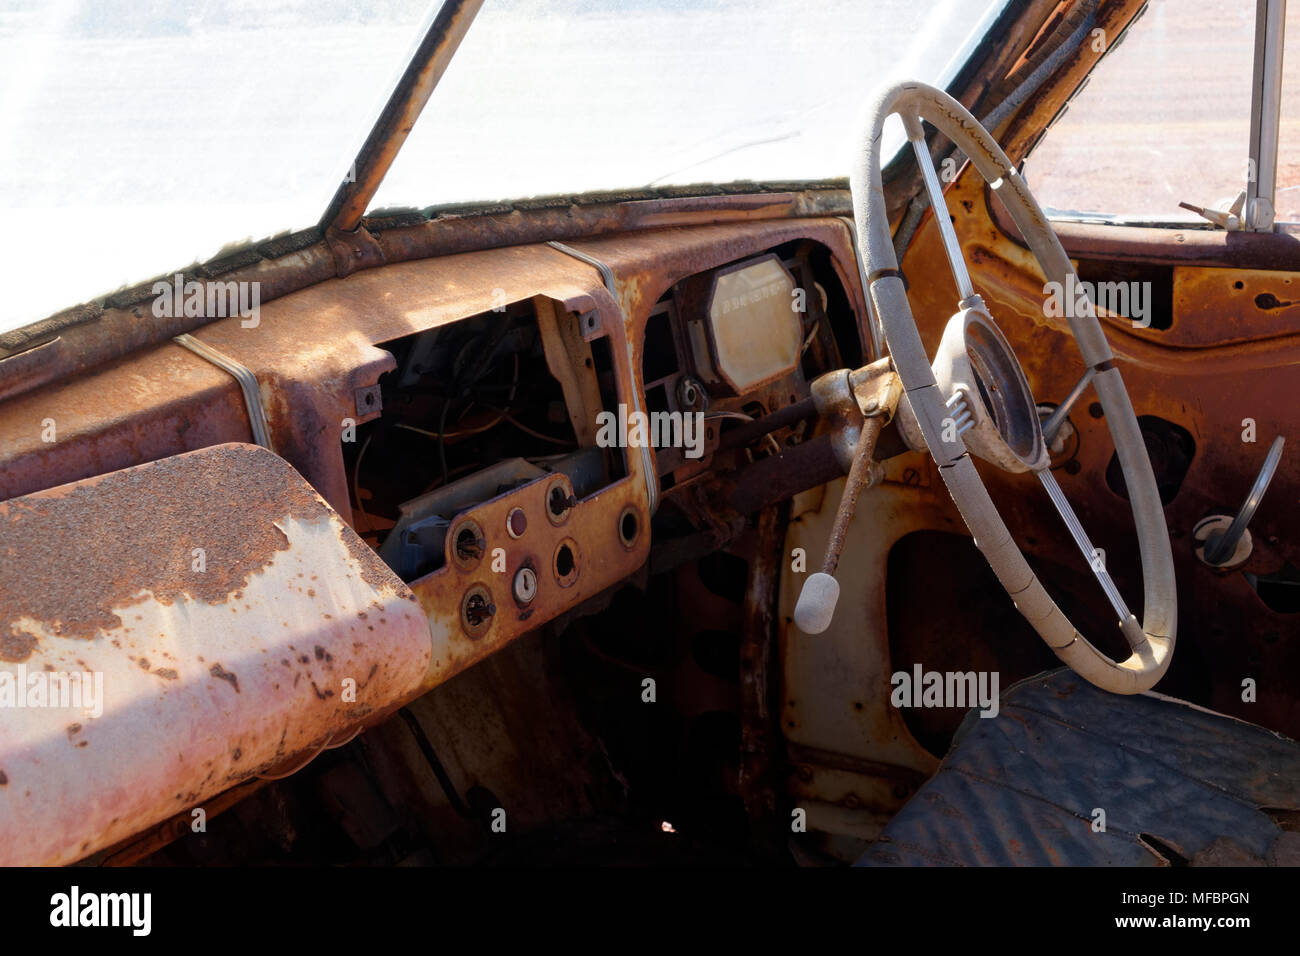 Old Abandoned Car In Australian Stock Photos & Old Abandoned Car In ...